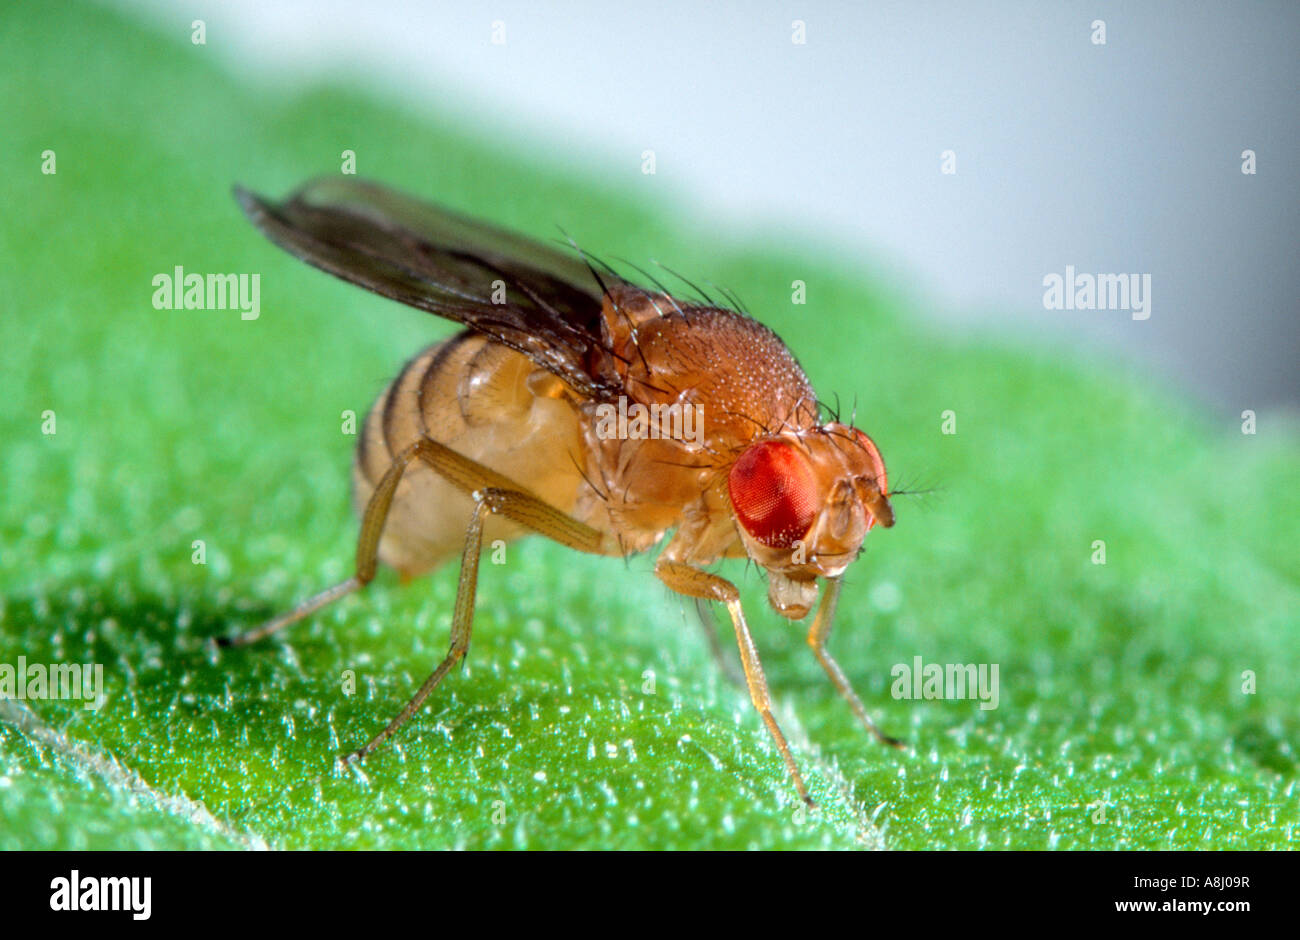 Drosophila Fruit Fly Insect Stock Photos & Drosophila Fruit Fly ...